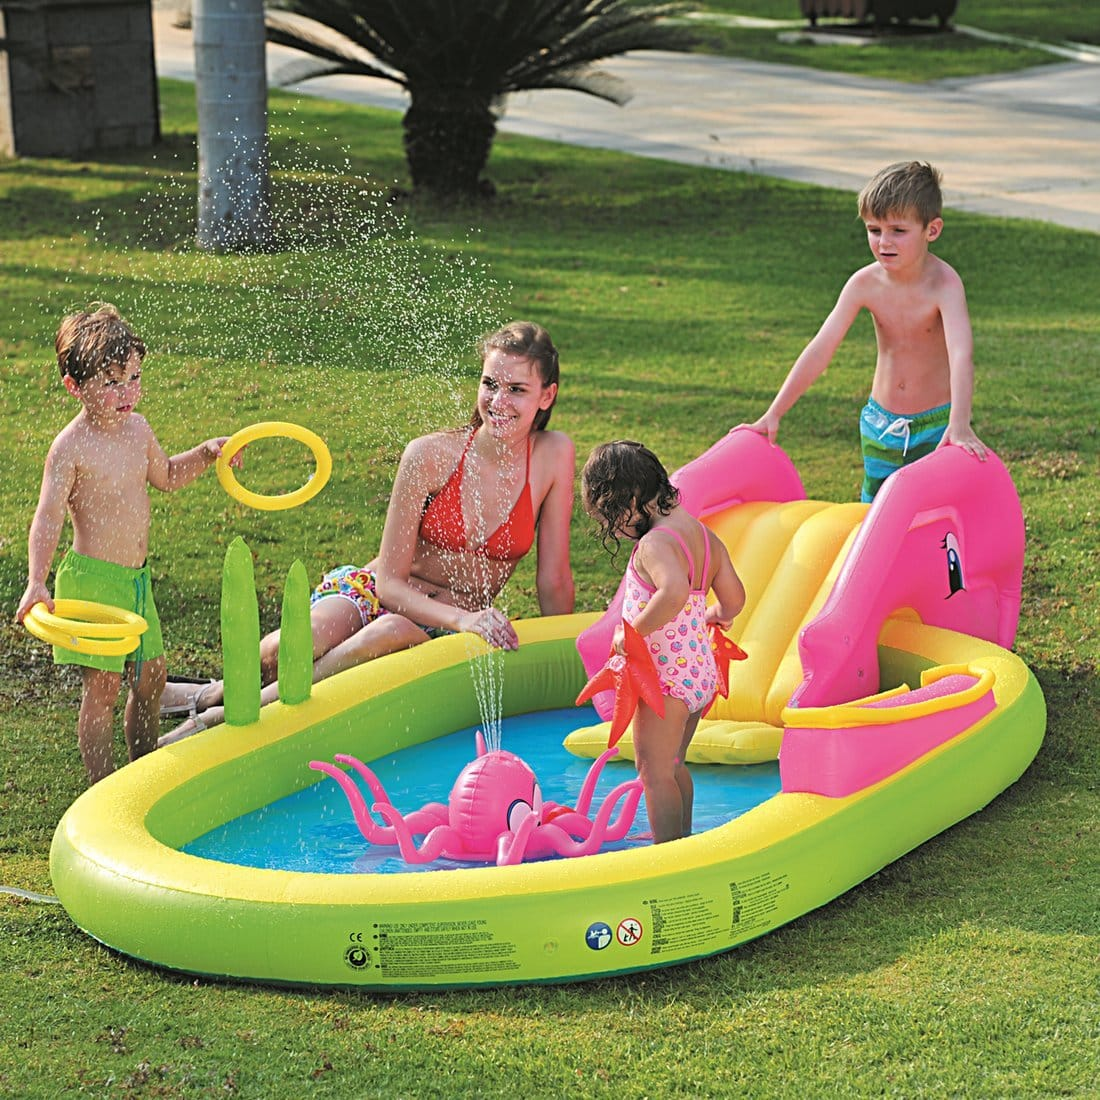 Top 10 Best Inflatable Pools in 2020 Reviews | Buyer's Guide